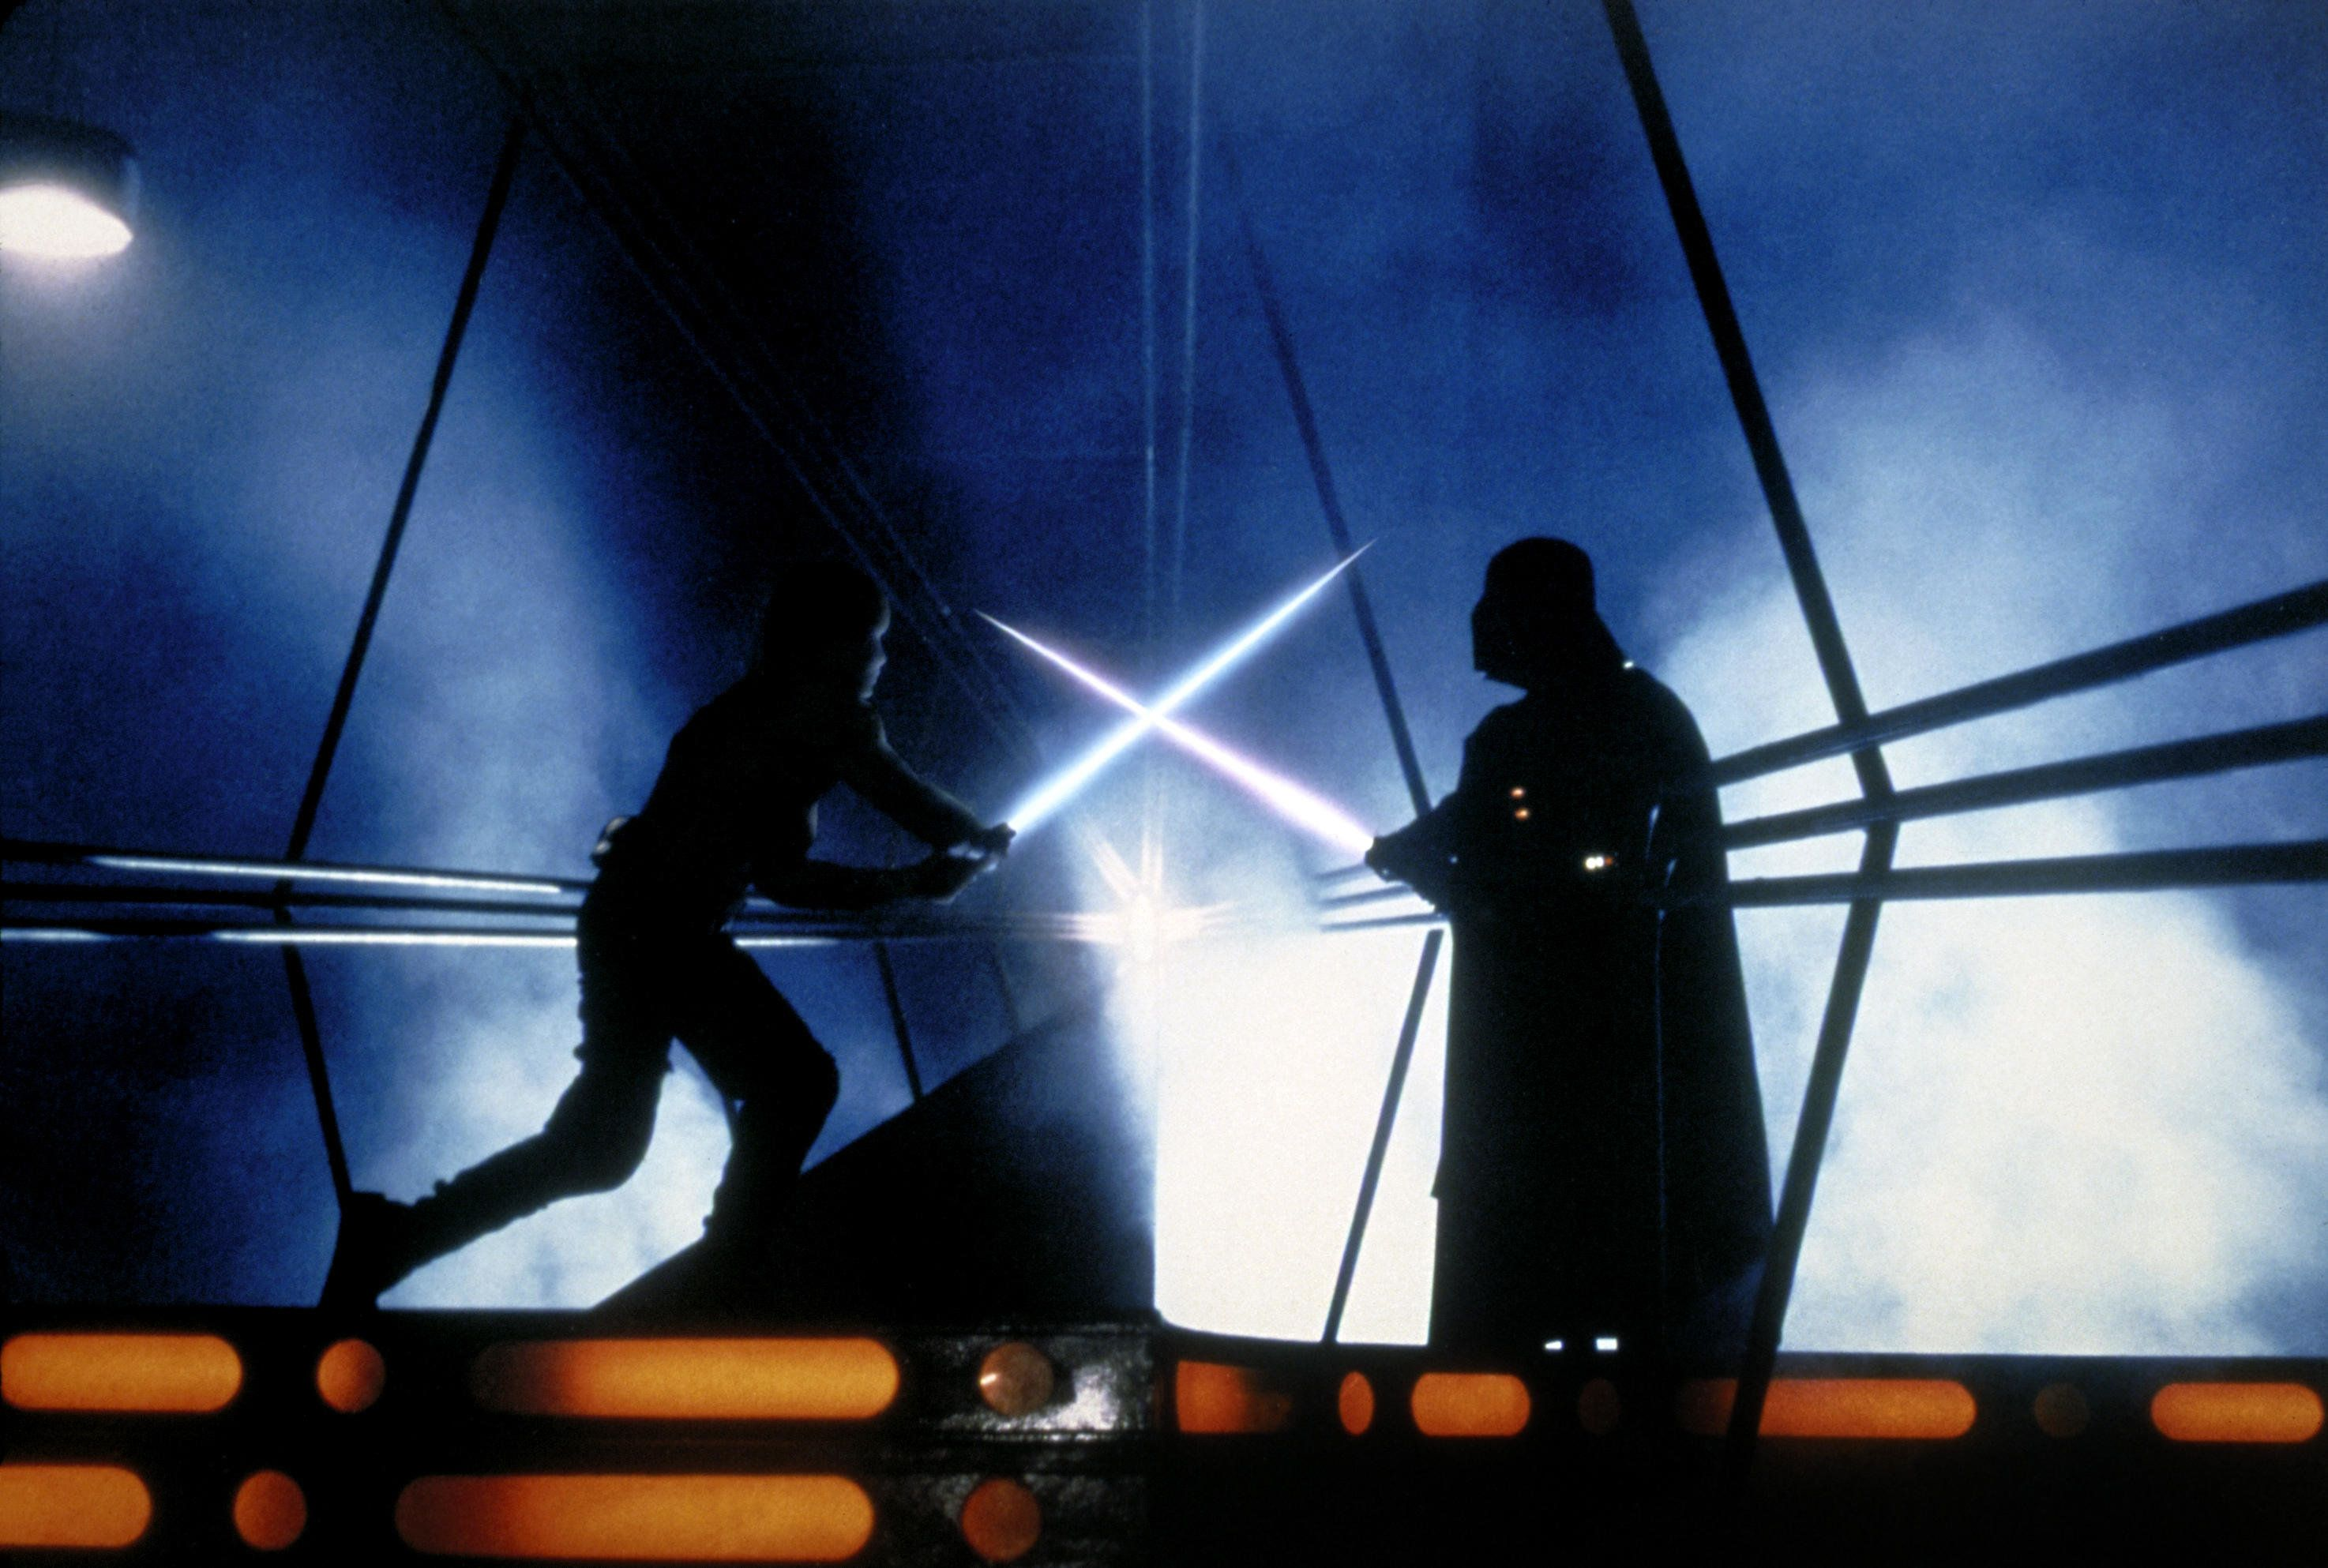 JTEFN4 MARK HAMILL & DAVID PROWSE STAR WARS: EPISODE V - THE EMPIRE STRIKES BACK (1980)